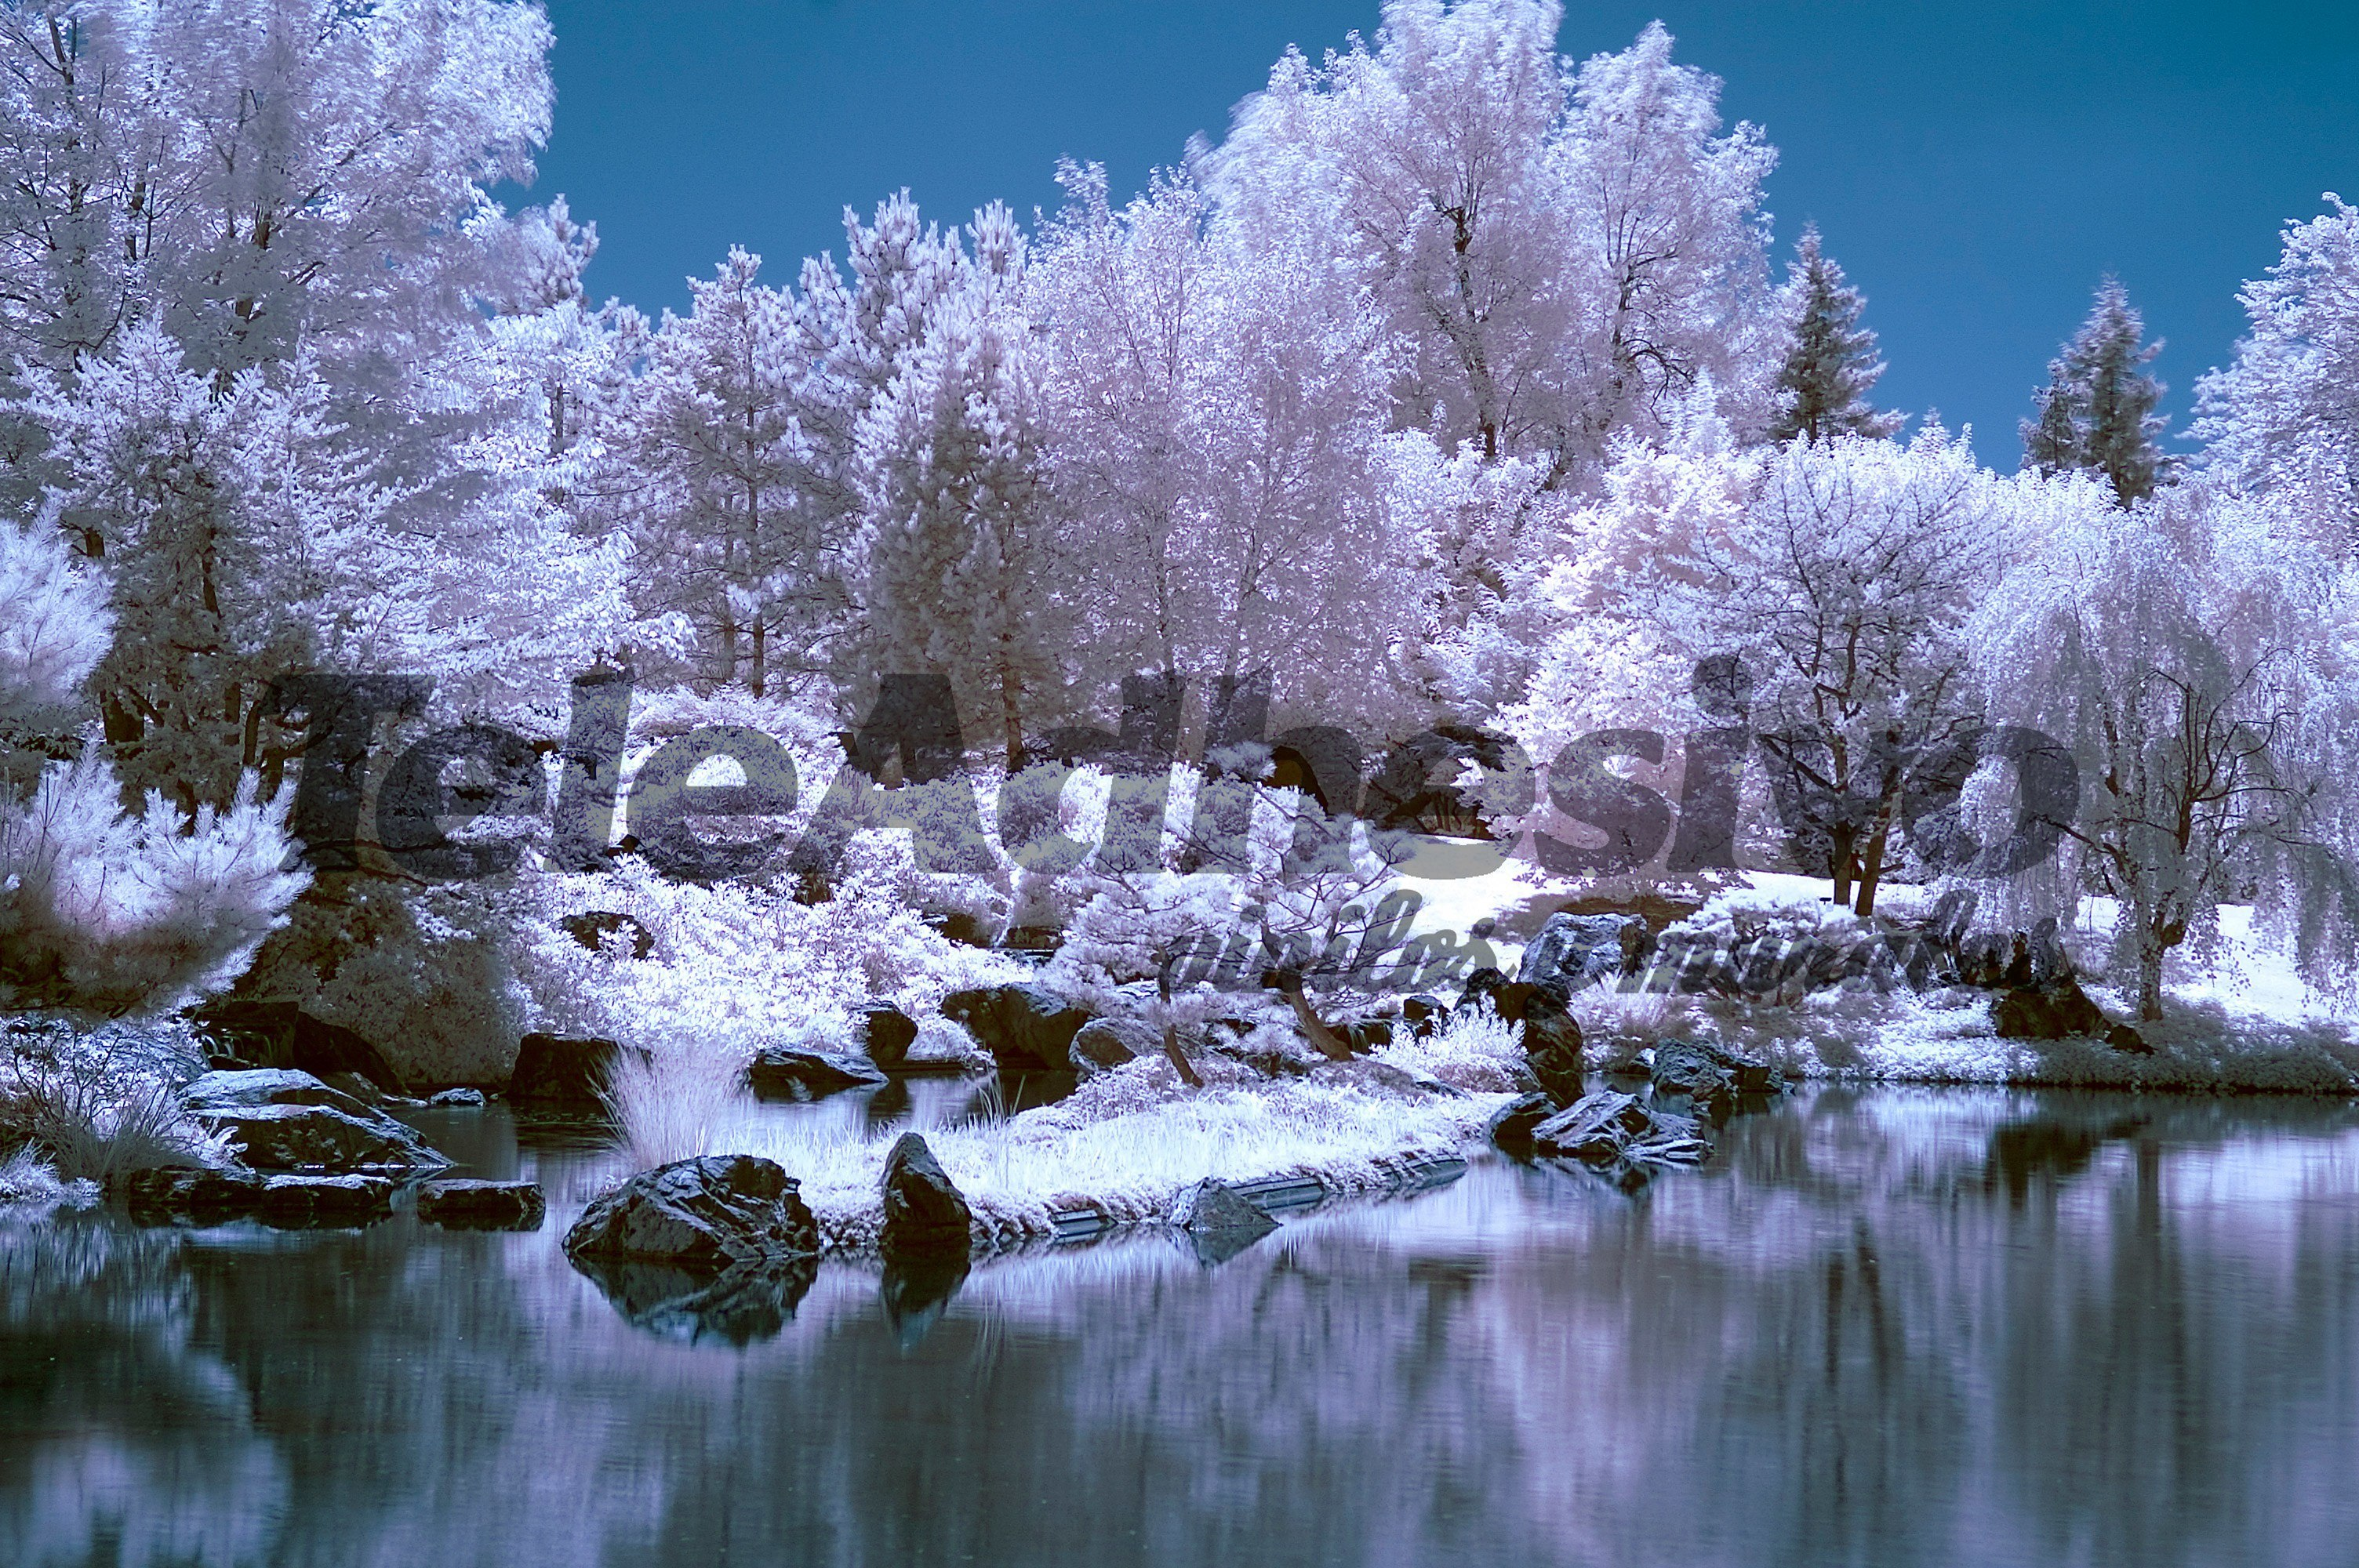 Wall Murals: Forest in winter